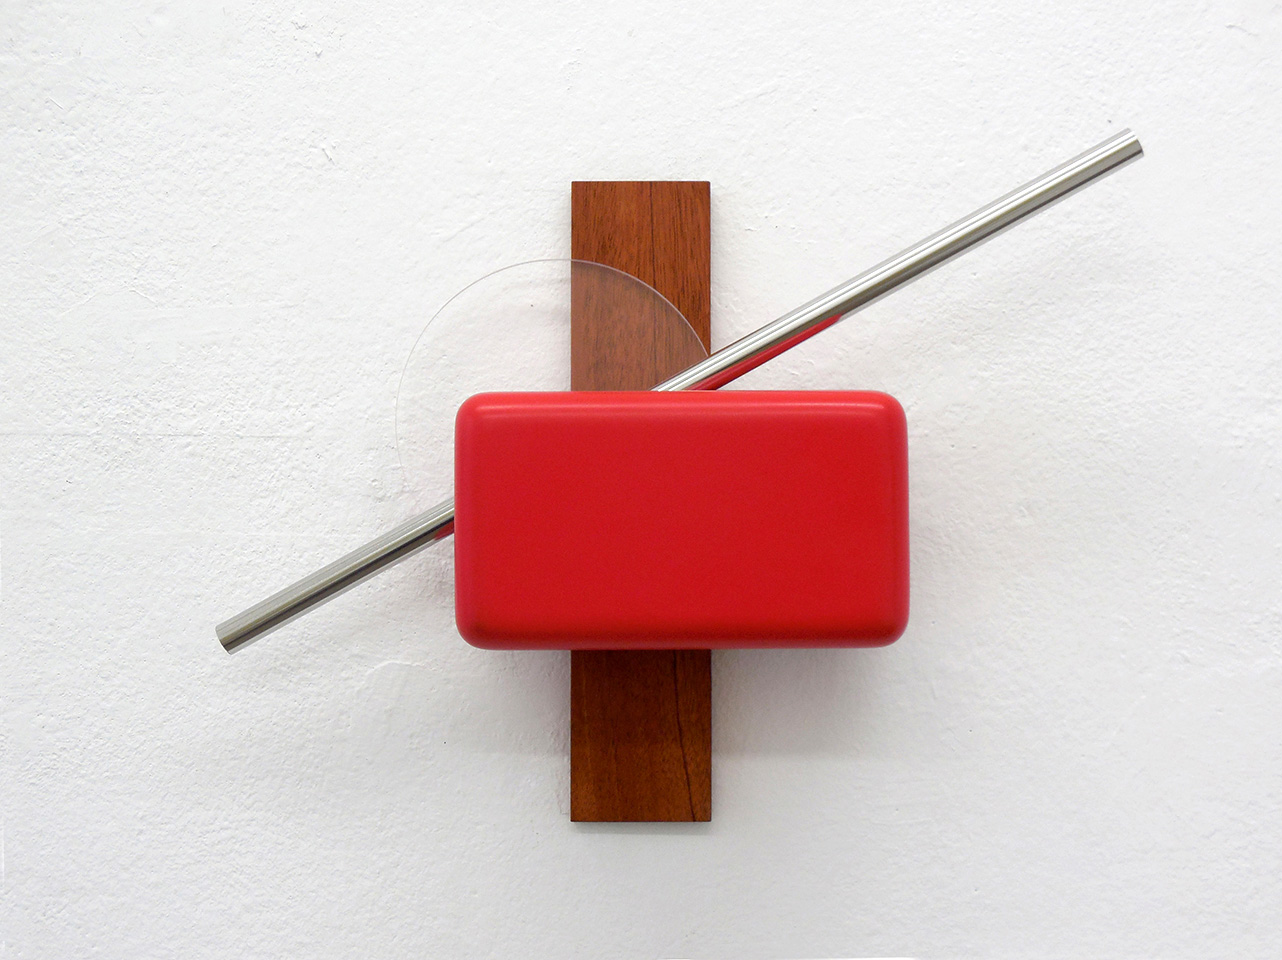 «Shapes for a perfect world. Shape 2», 2017, Mahogany, steel, acrylic glass, painted and polished MDM, 32 x 50 x 11,6 cm